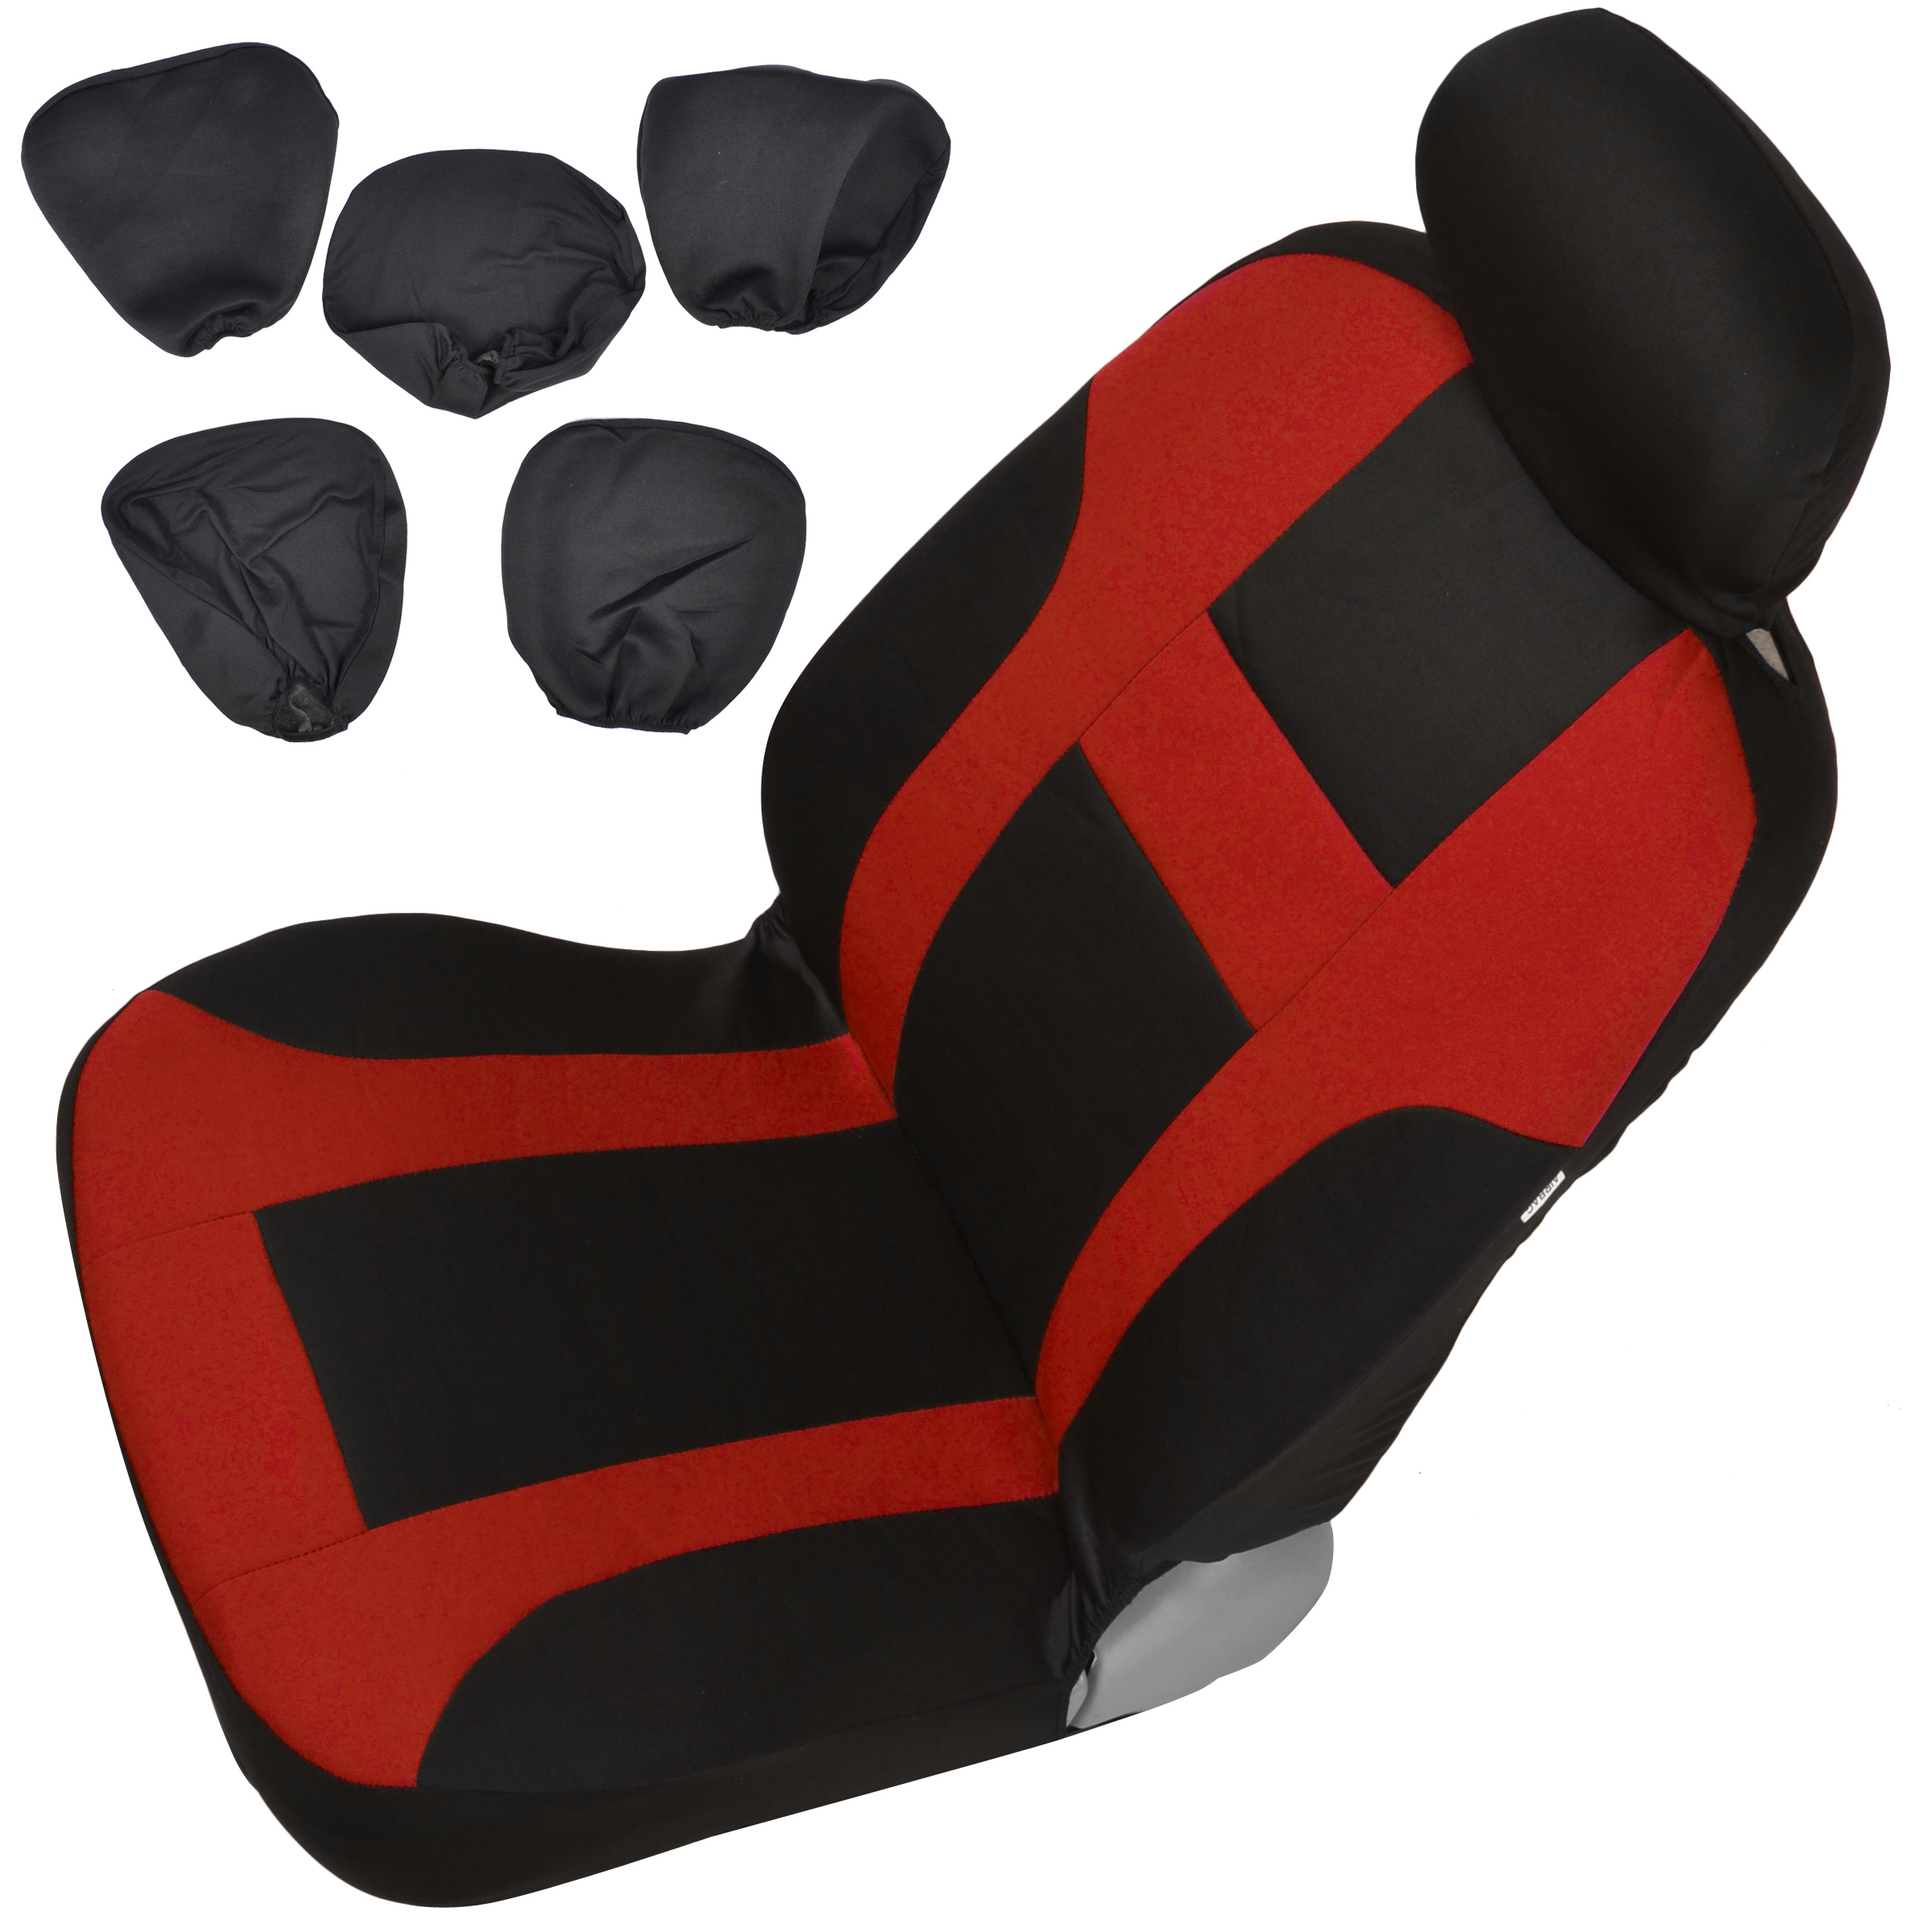 Monaco Red Set Car Seat Covers And Solid Black Hefty Mats